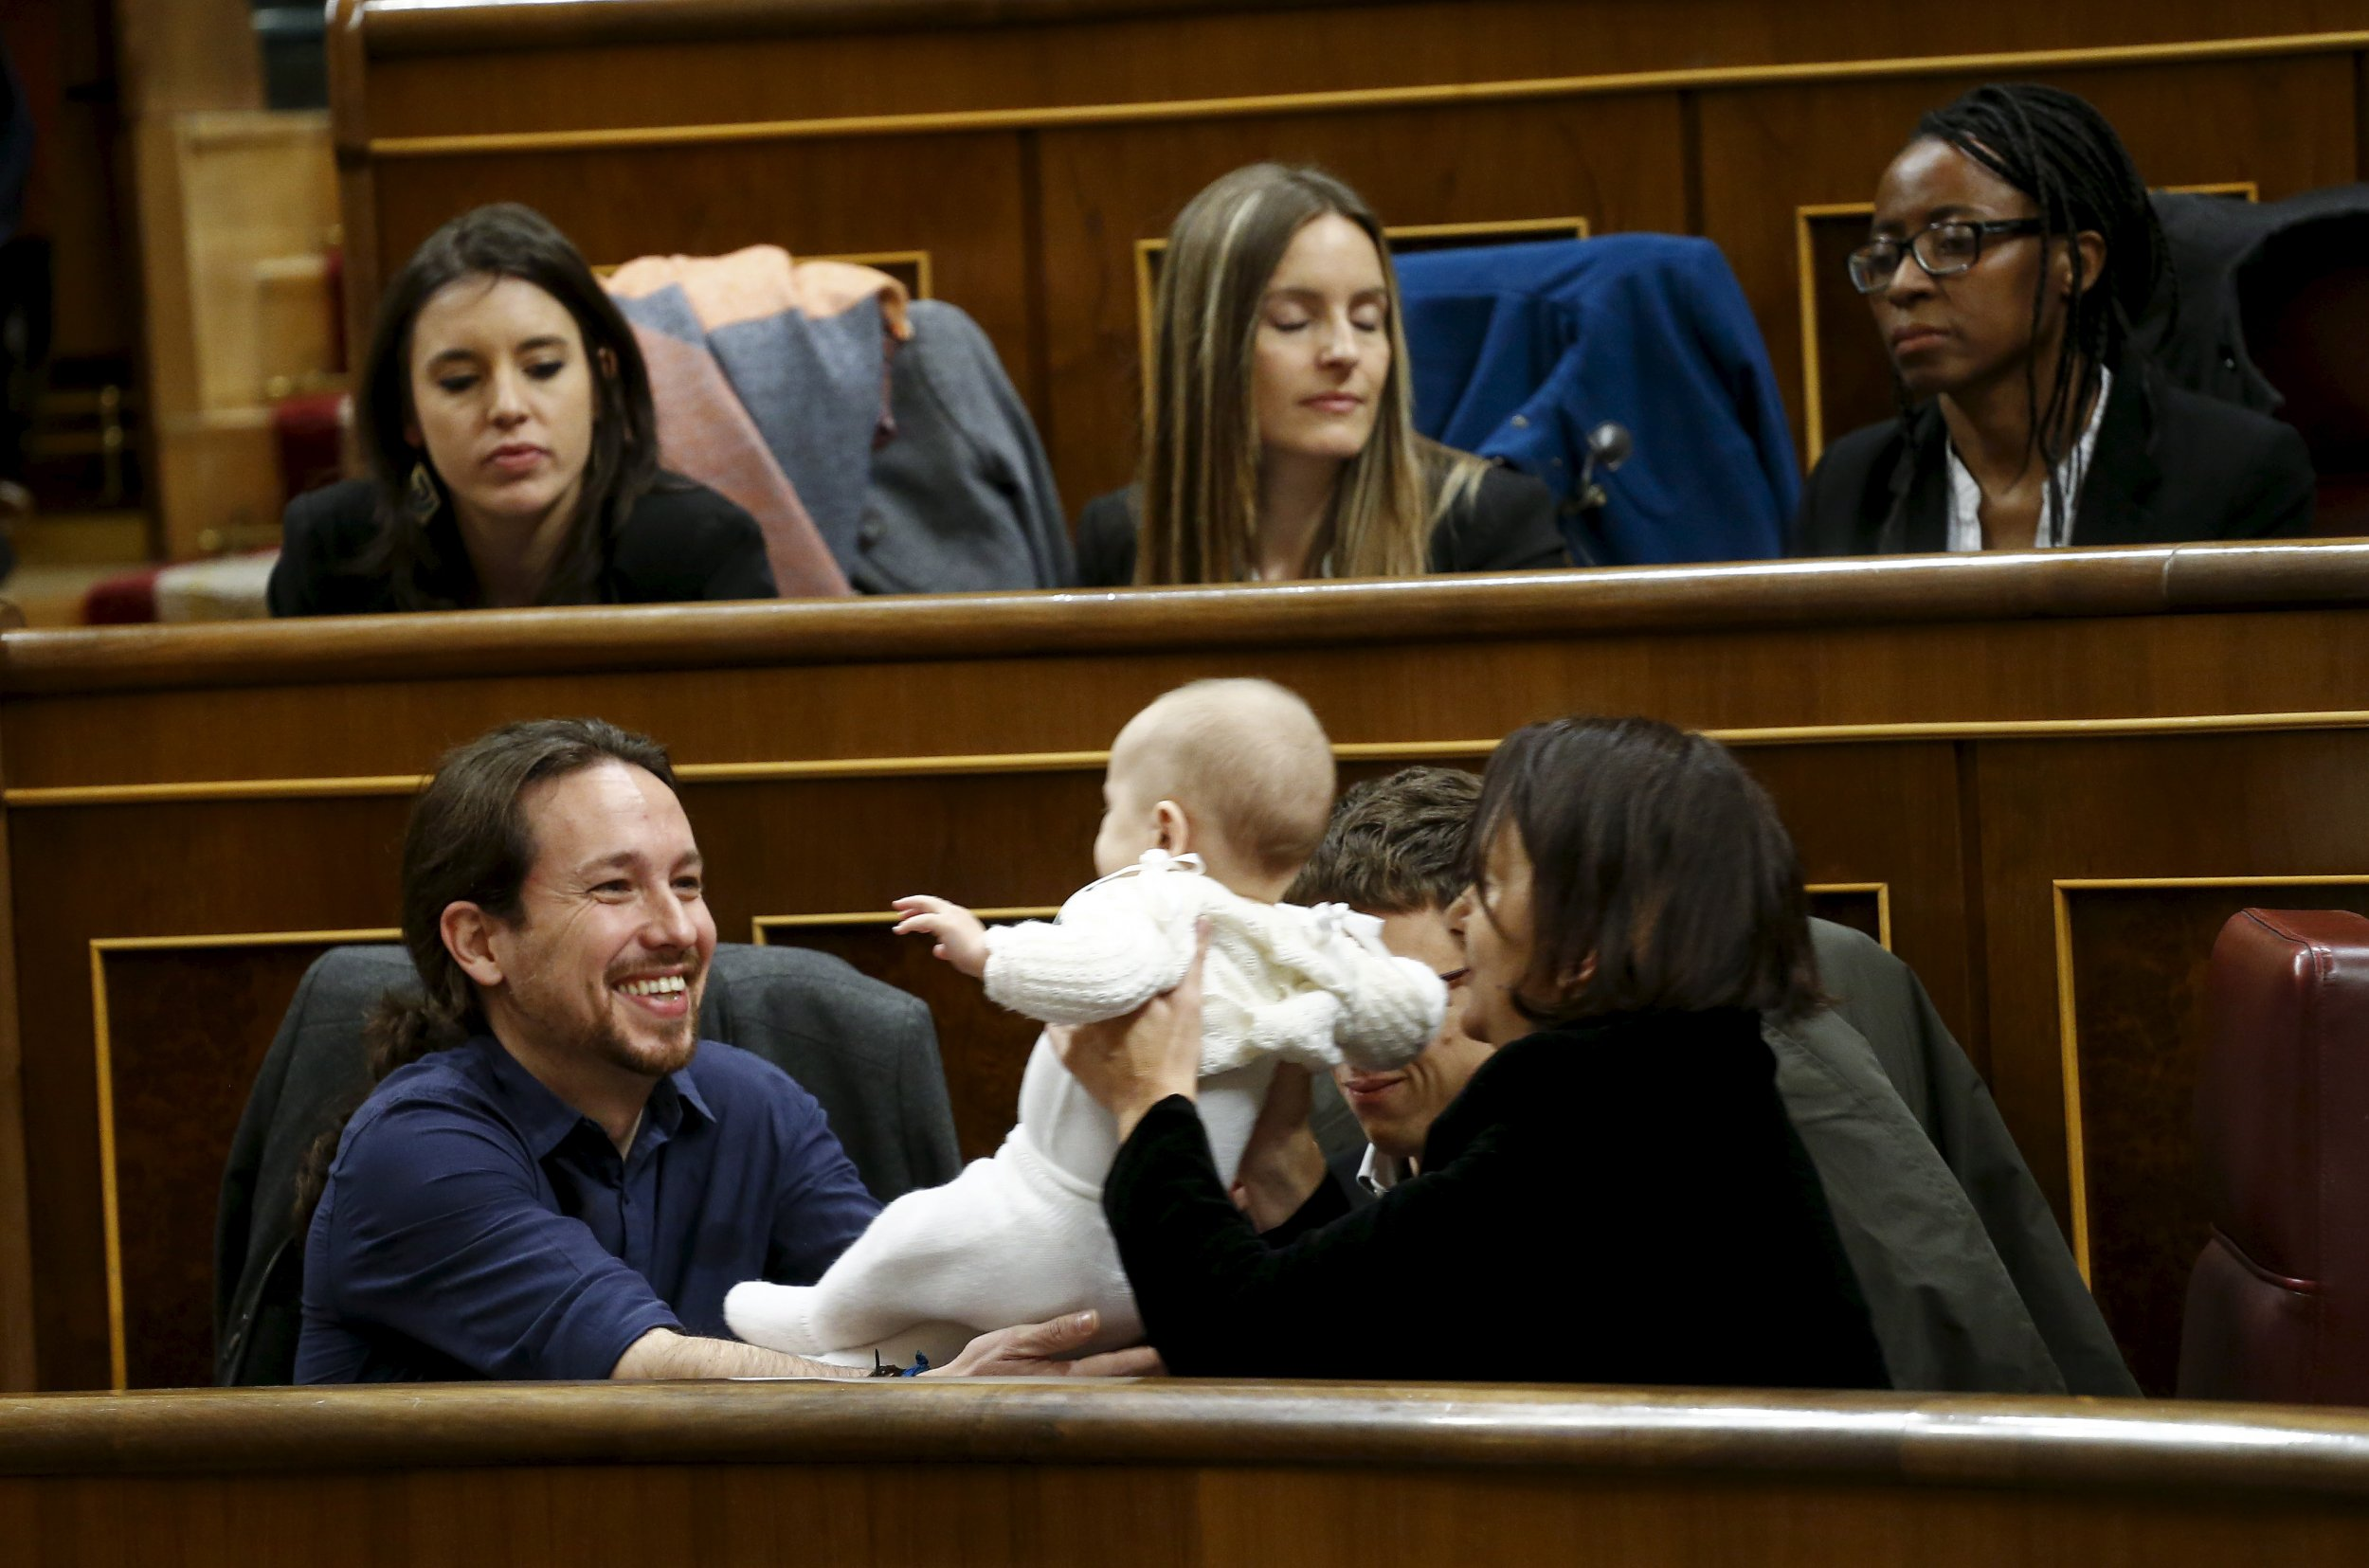 Podemos Politician Sparks Outrage Over Baby in Spanish Parliament